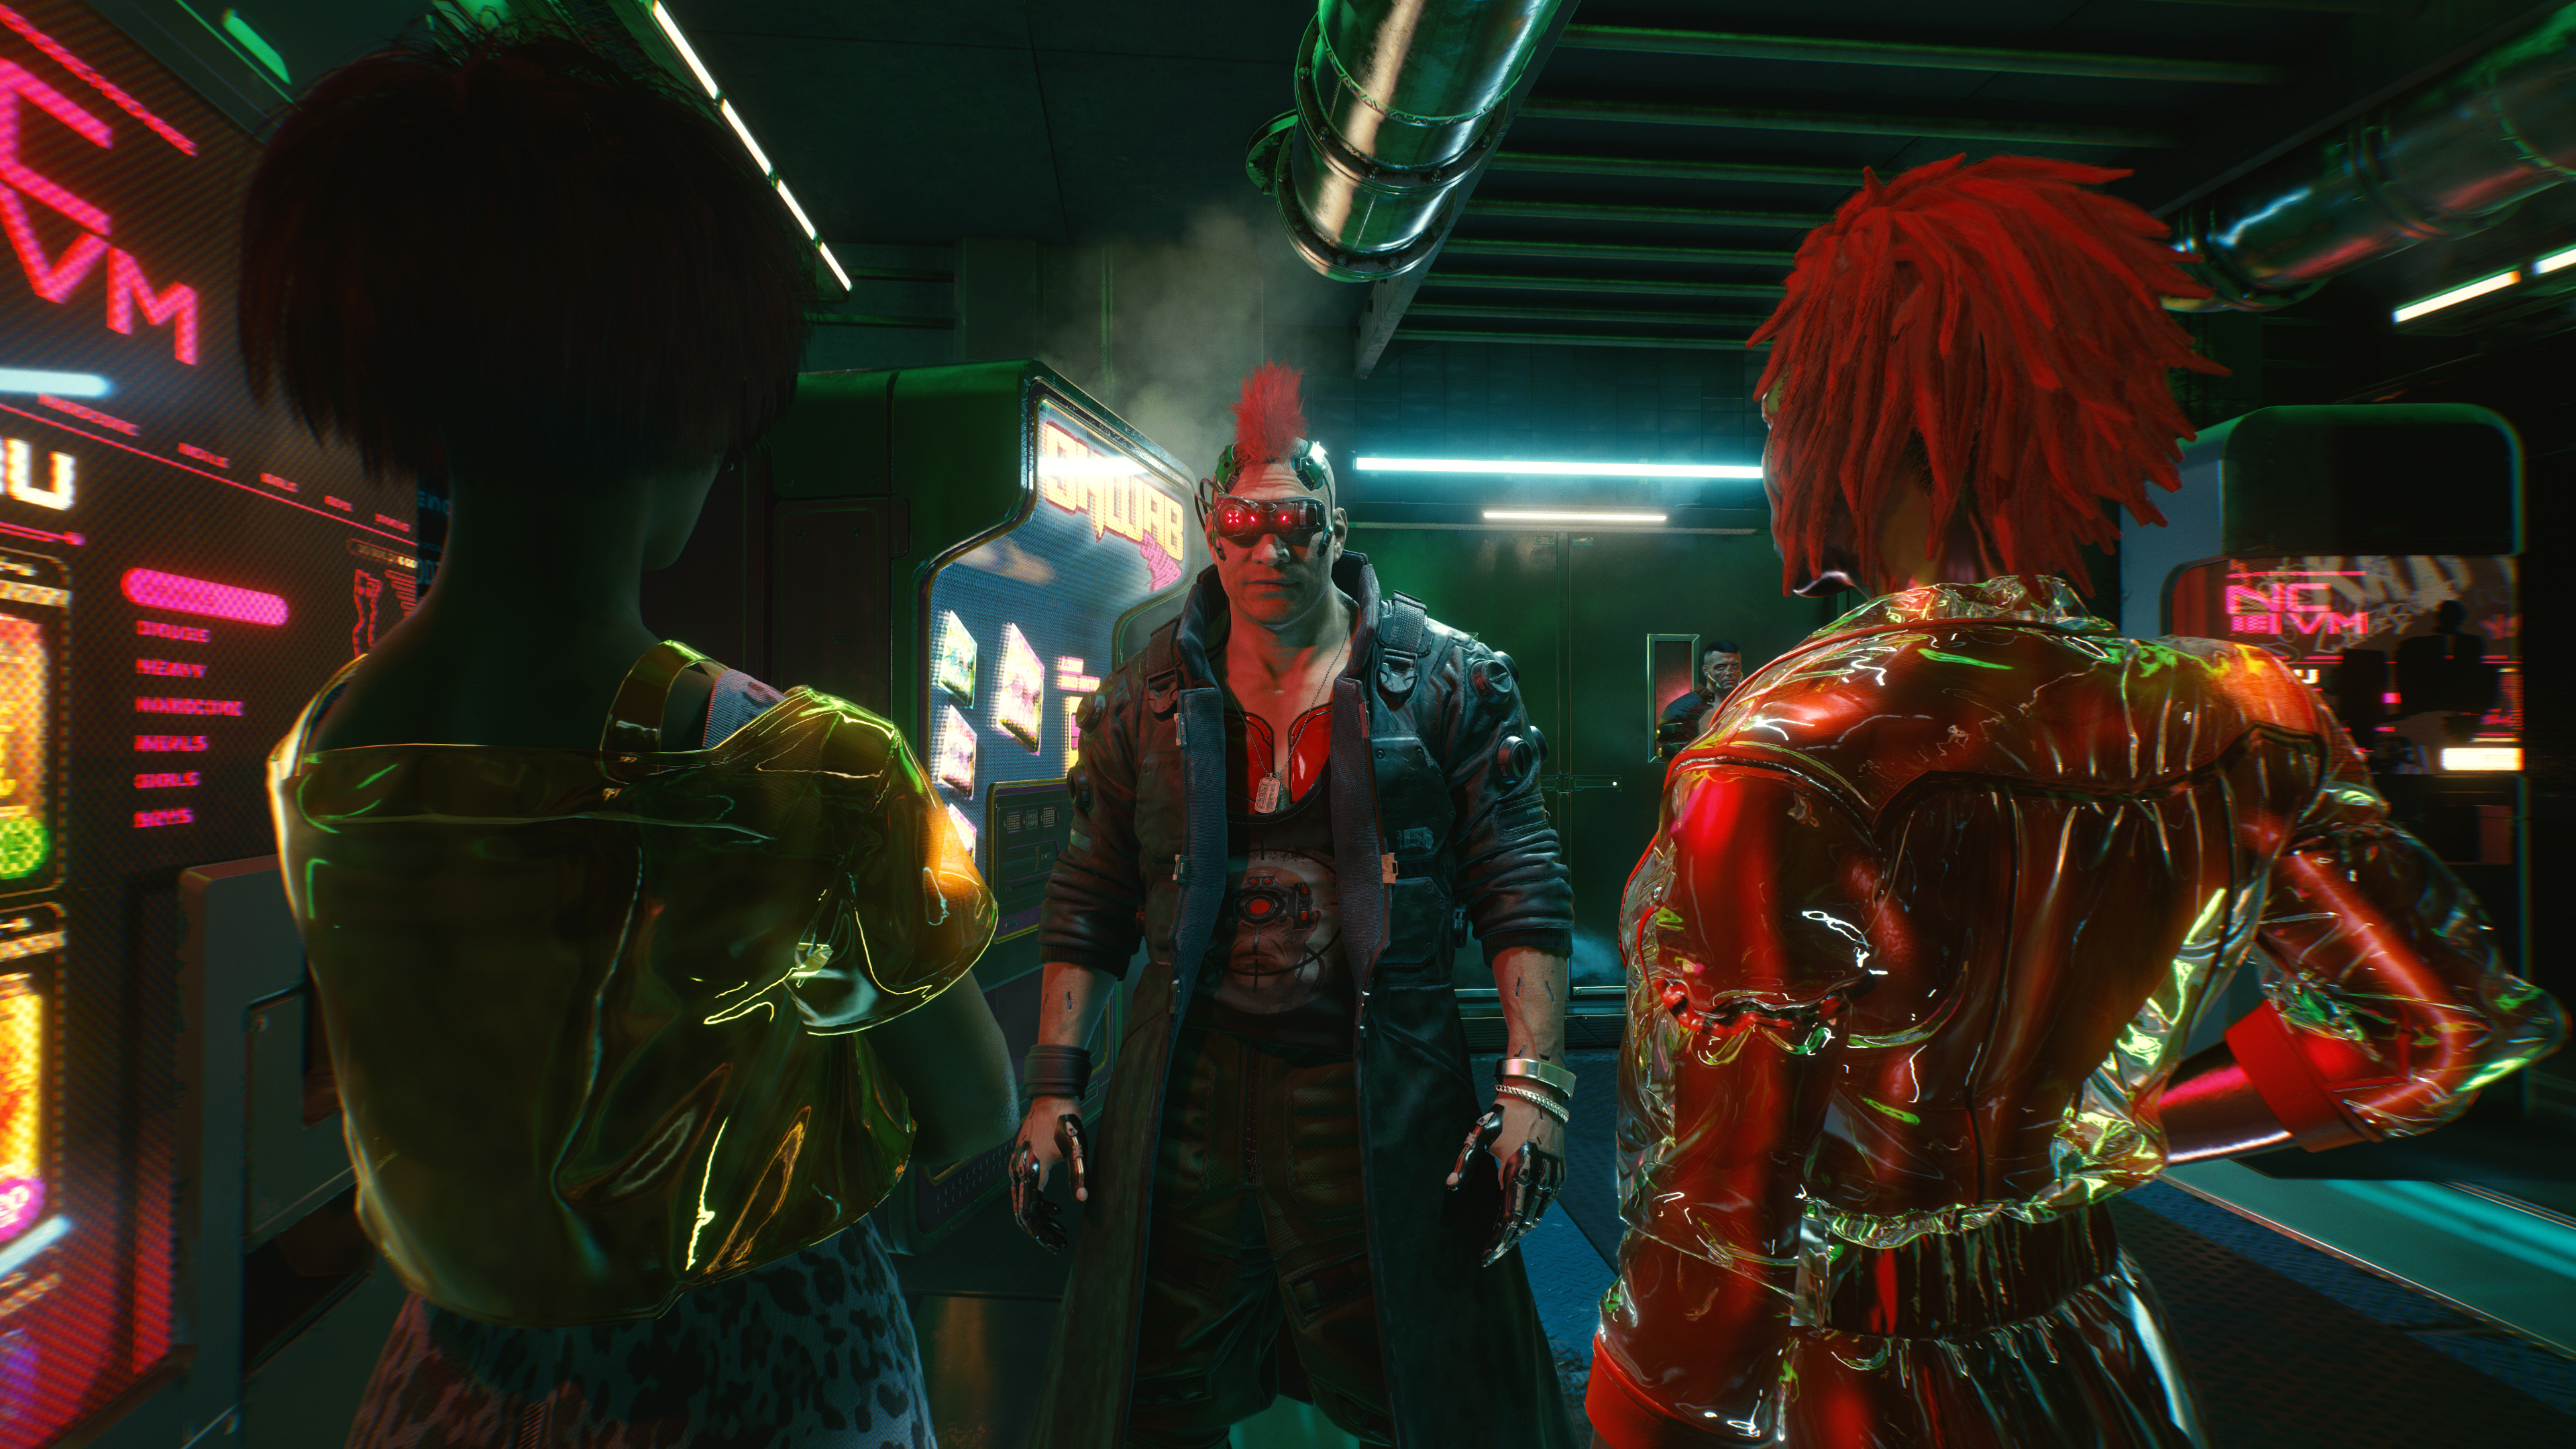 Cyberpunk2077_Whats_your_style_RGB.jpg